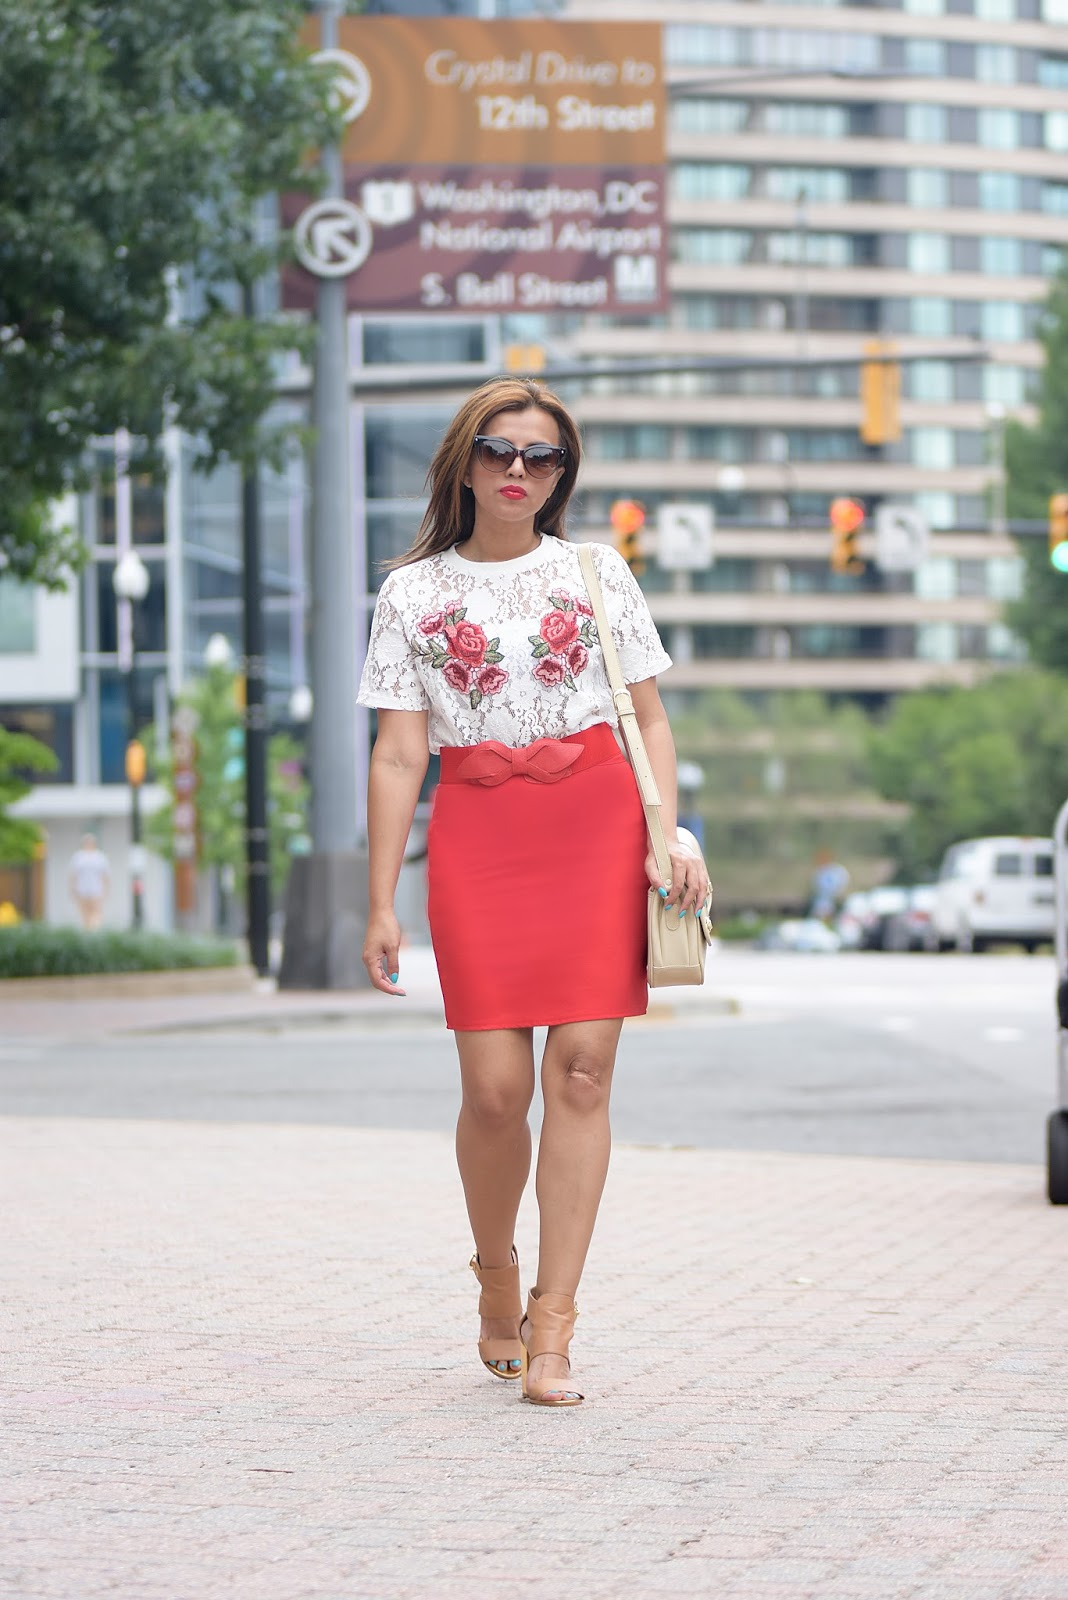 Marisol Blouse: Romwe Pencil Skirt: DressLink Shoes: CB LABEL Bag: America   Mau T-Shirt: Calvin Klein Pants: H&M Shoes: DSW Sunglasses: Kenneth Cole Watch: Jord